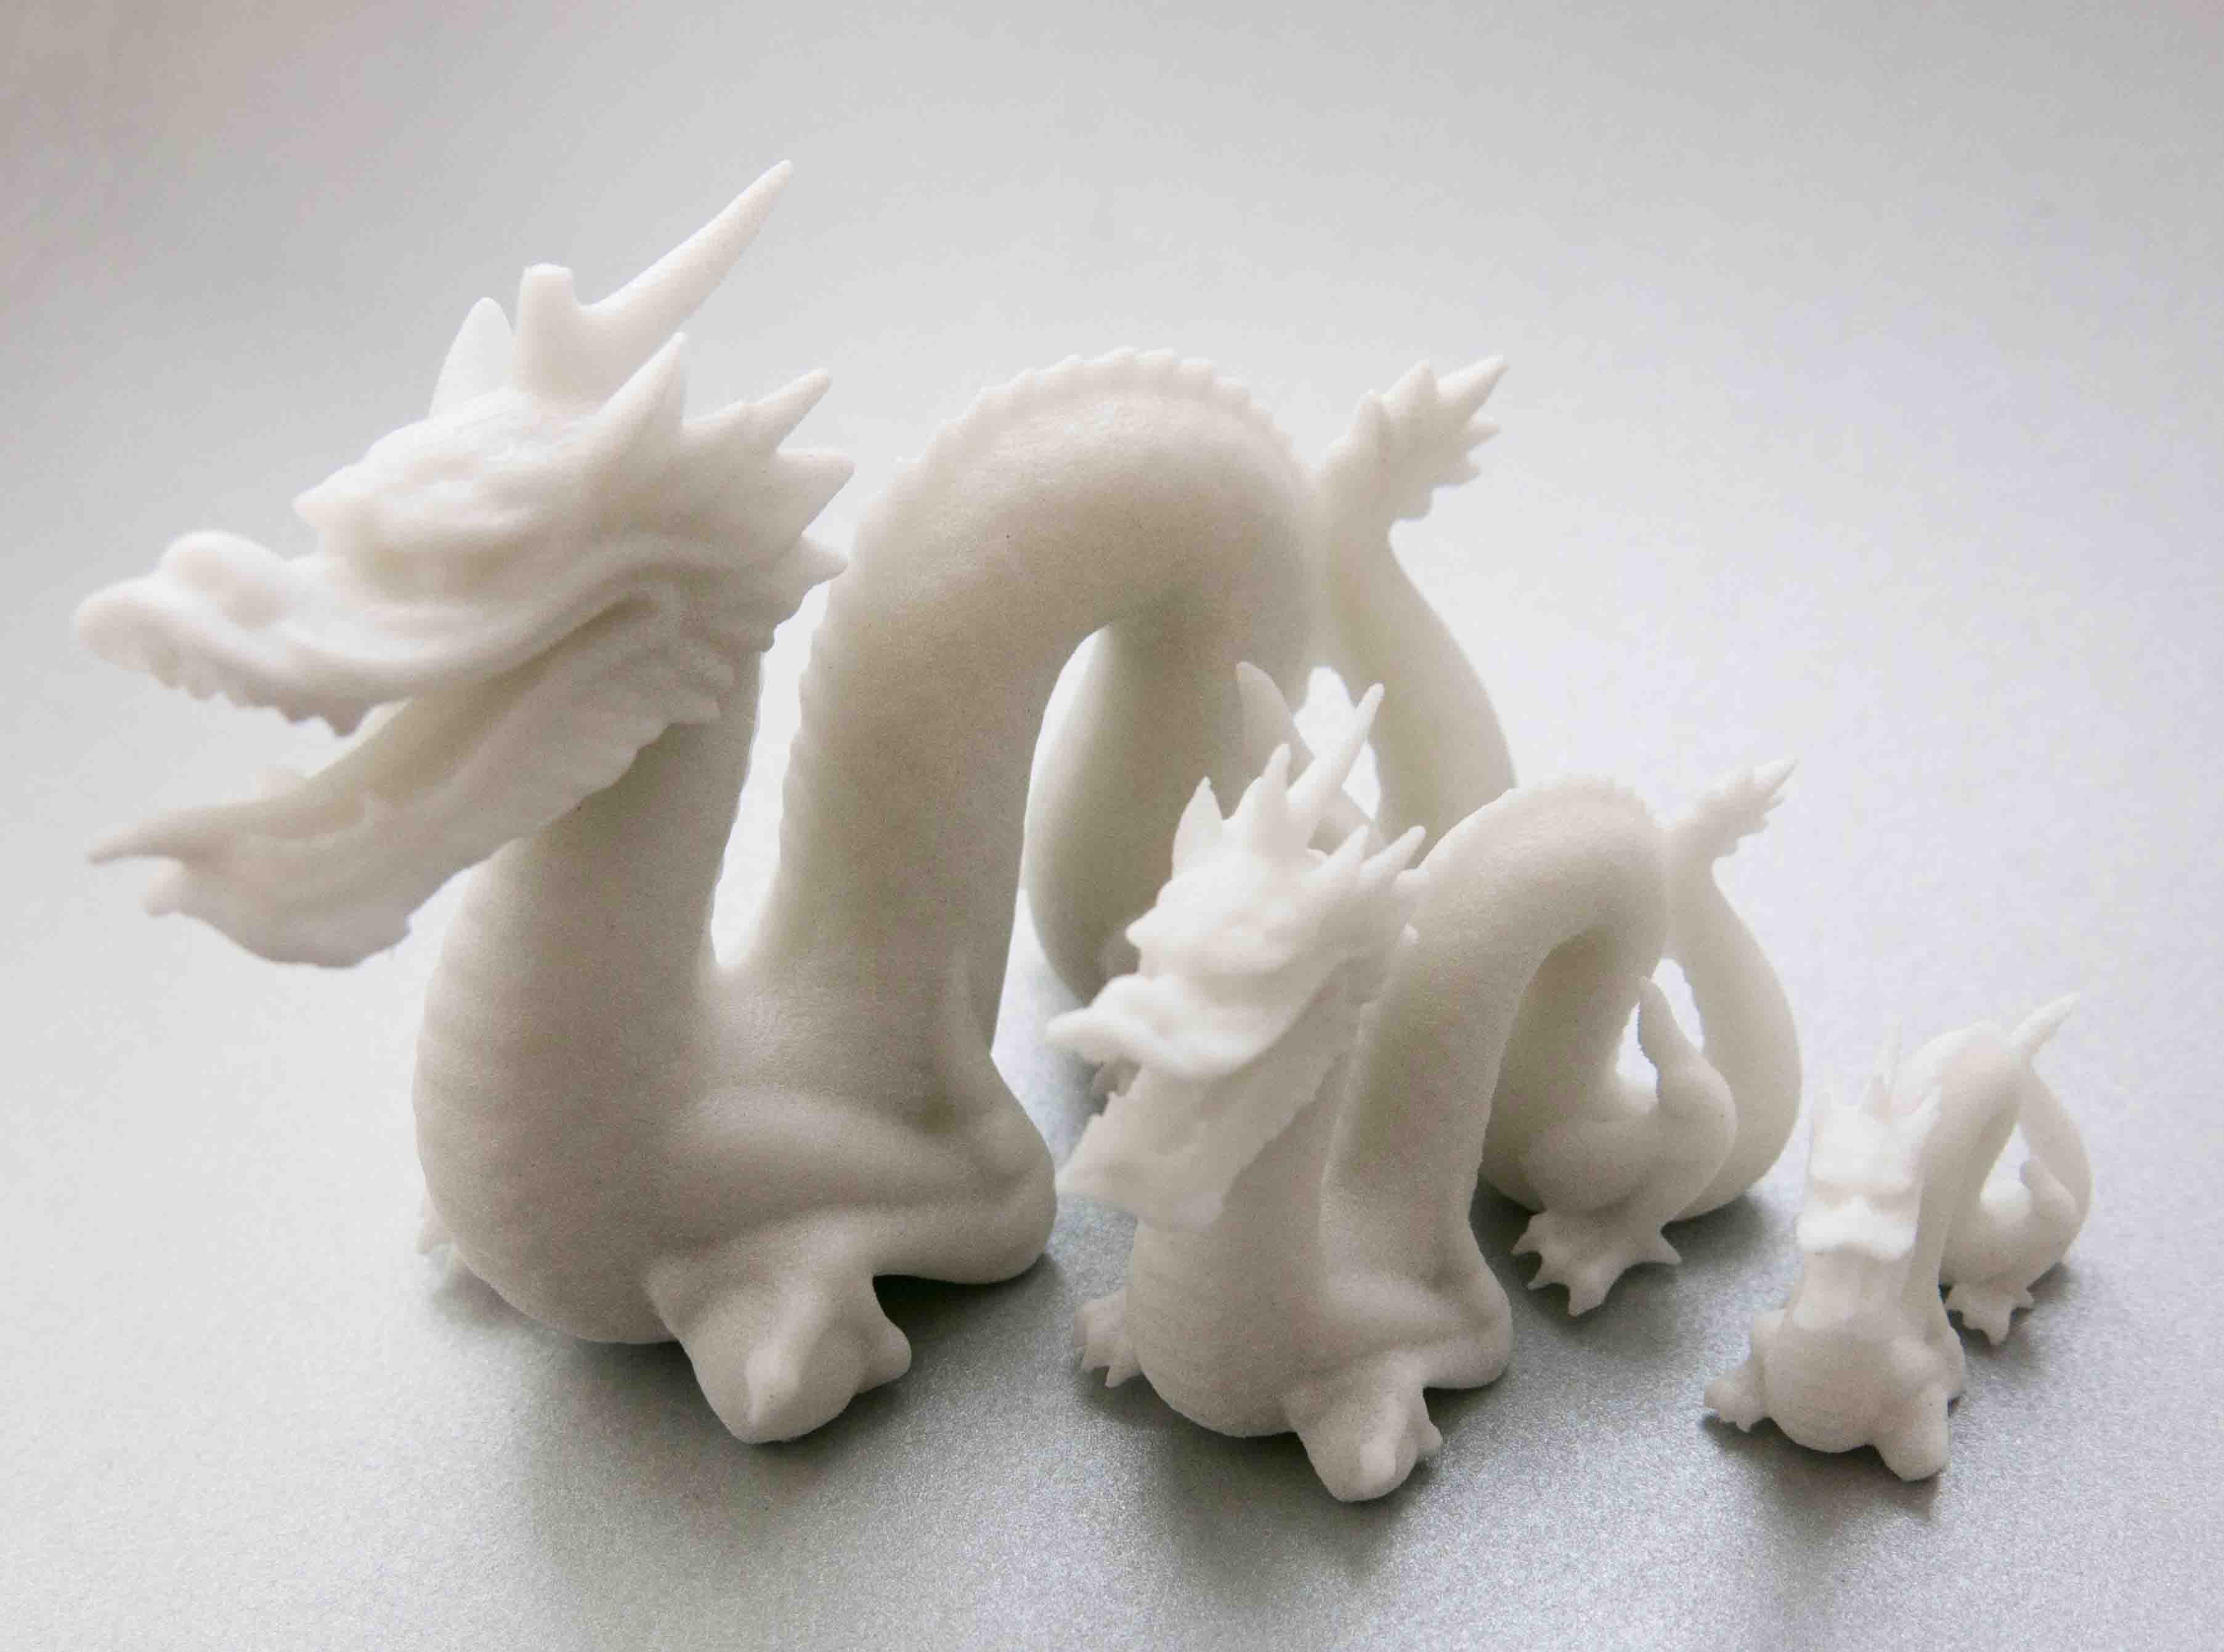 3D printed dragon with Glass-Filled Nylon